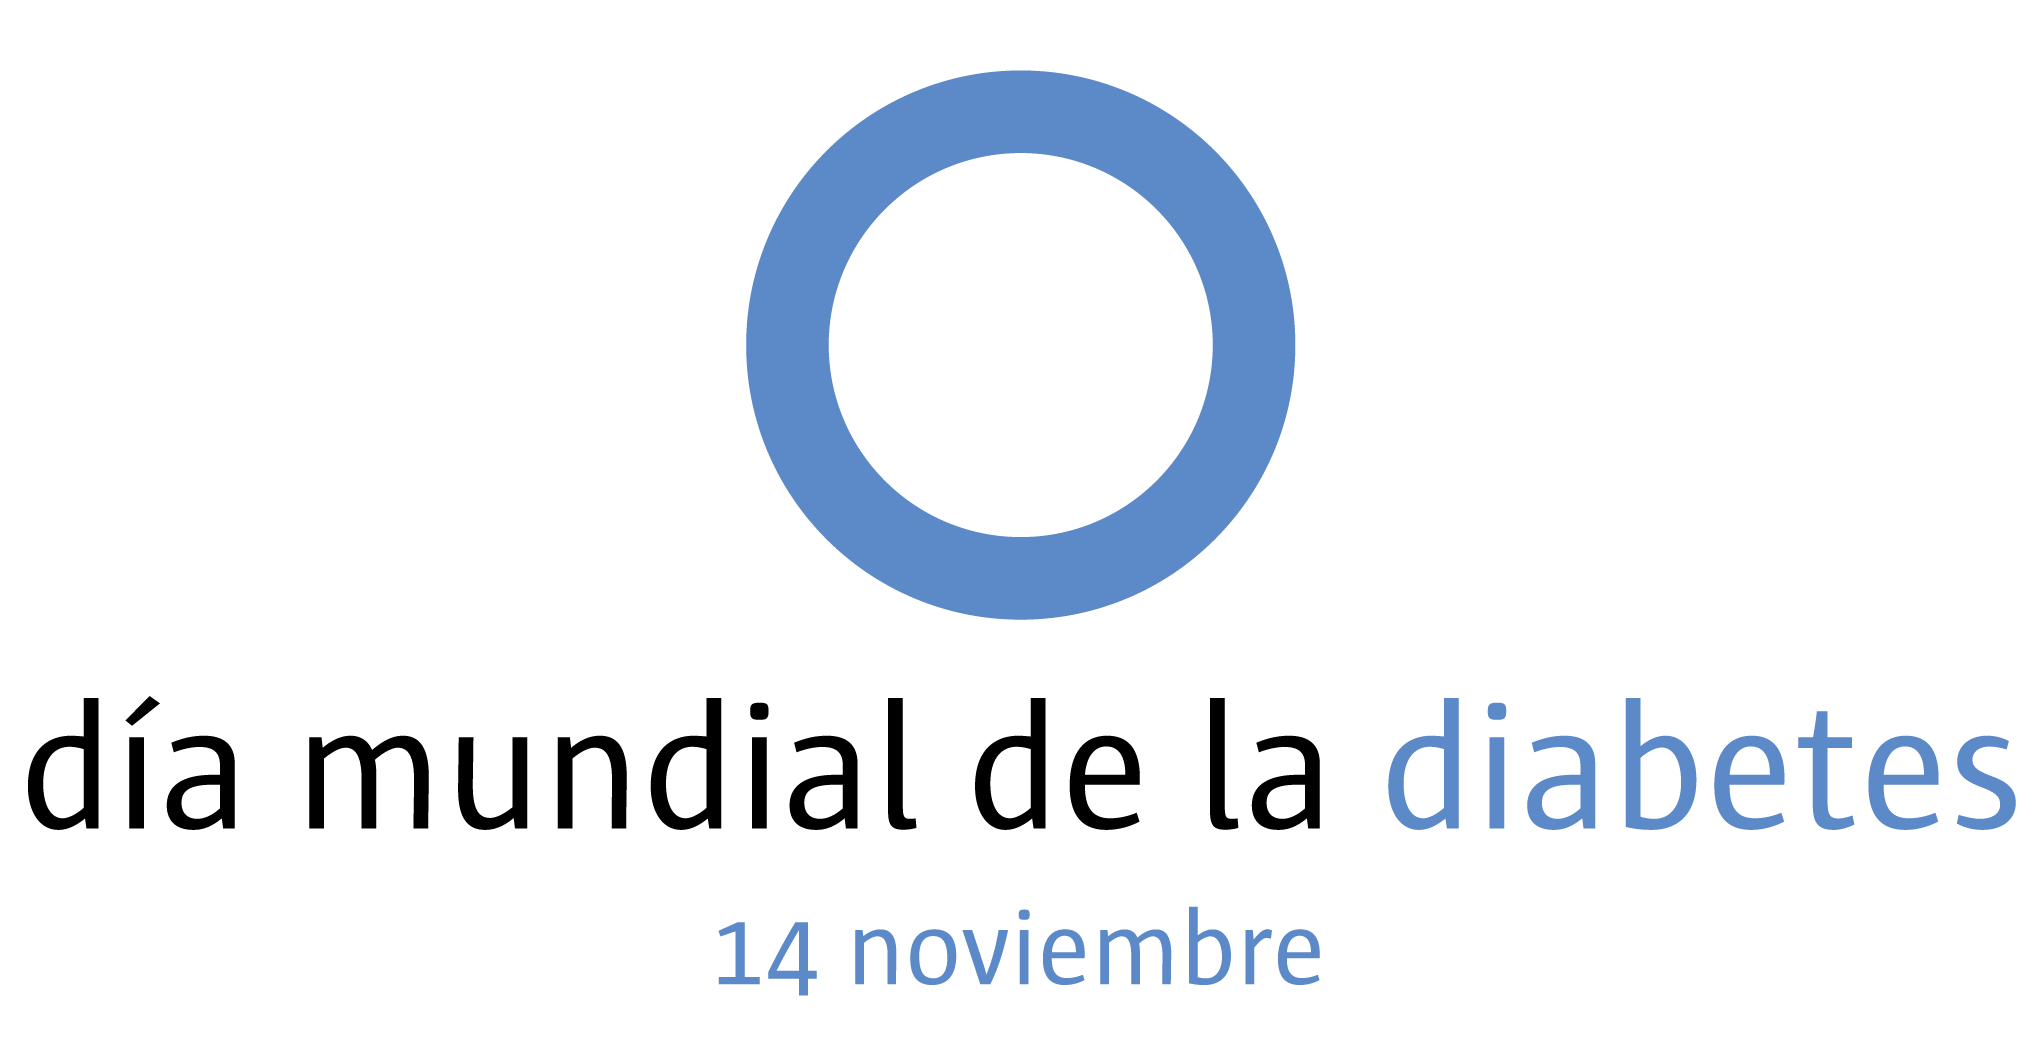 que criterios de diagnóstico para la diabetes calendario 1999